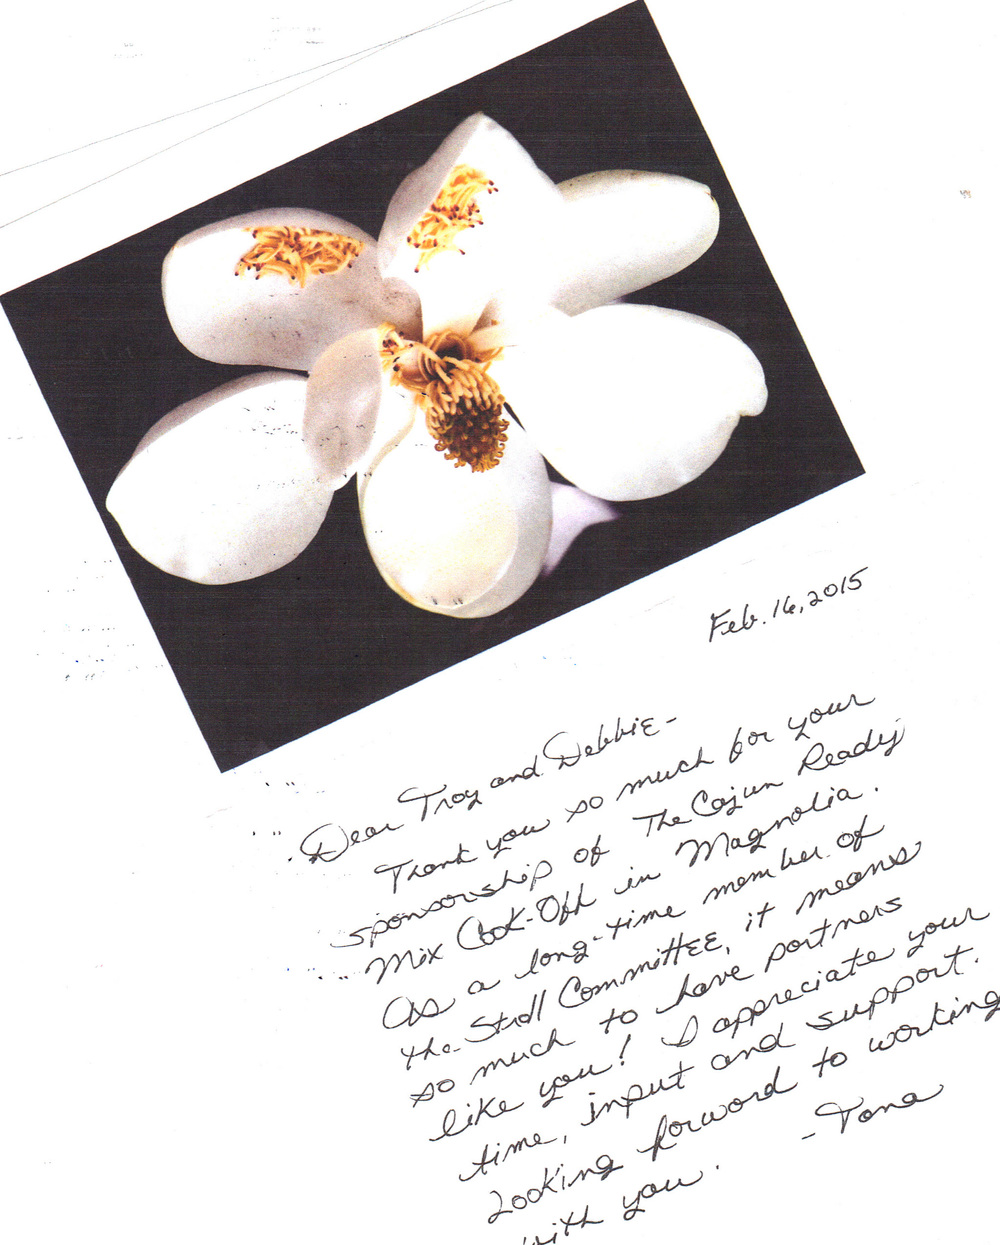 Magnolia on the Stroll Thank You Card 02 16 15.JPG